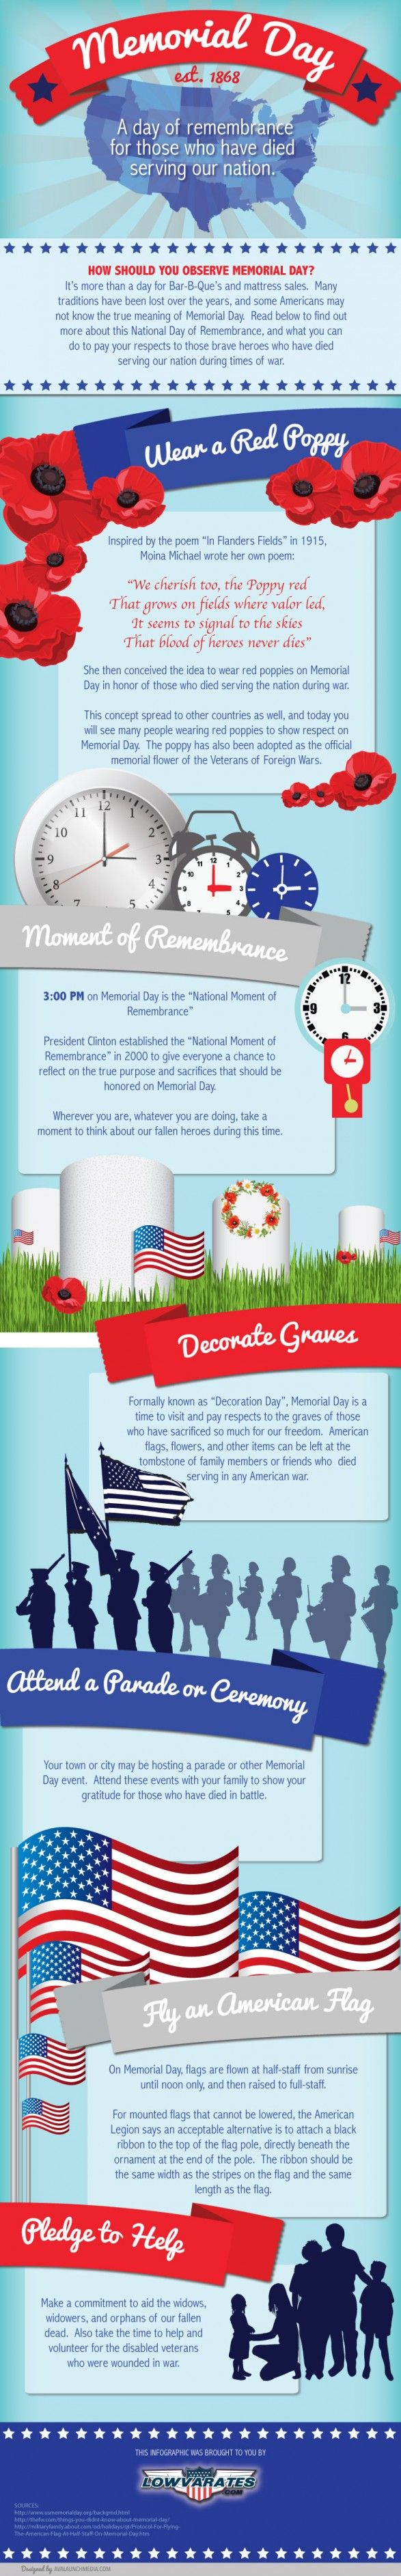 Memorial Day Quotes And Infographic: A Day Of Remembrance